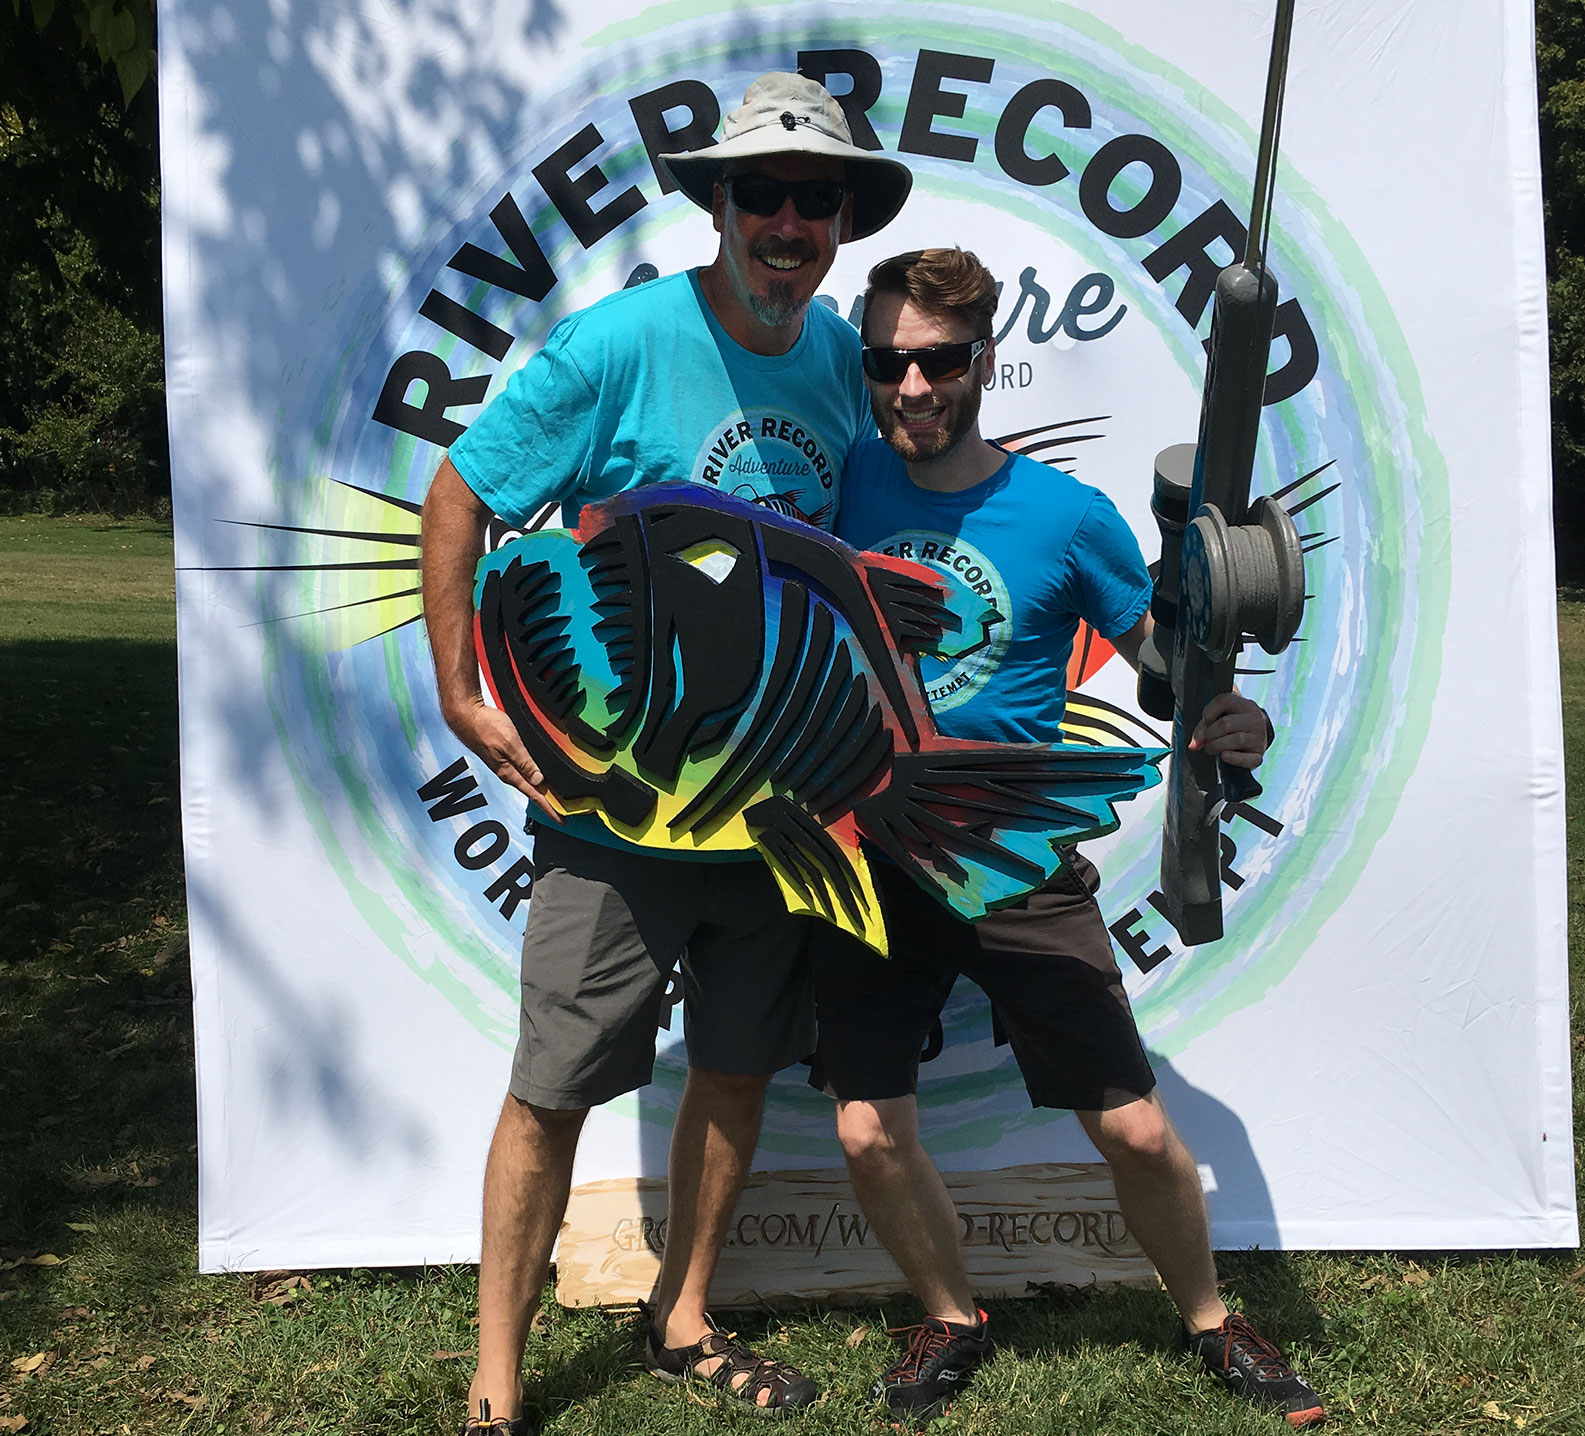 Marc Phelps poses with a fan at the River Record Adventure kickoff party in Madison